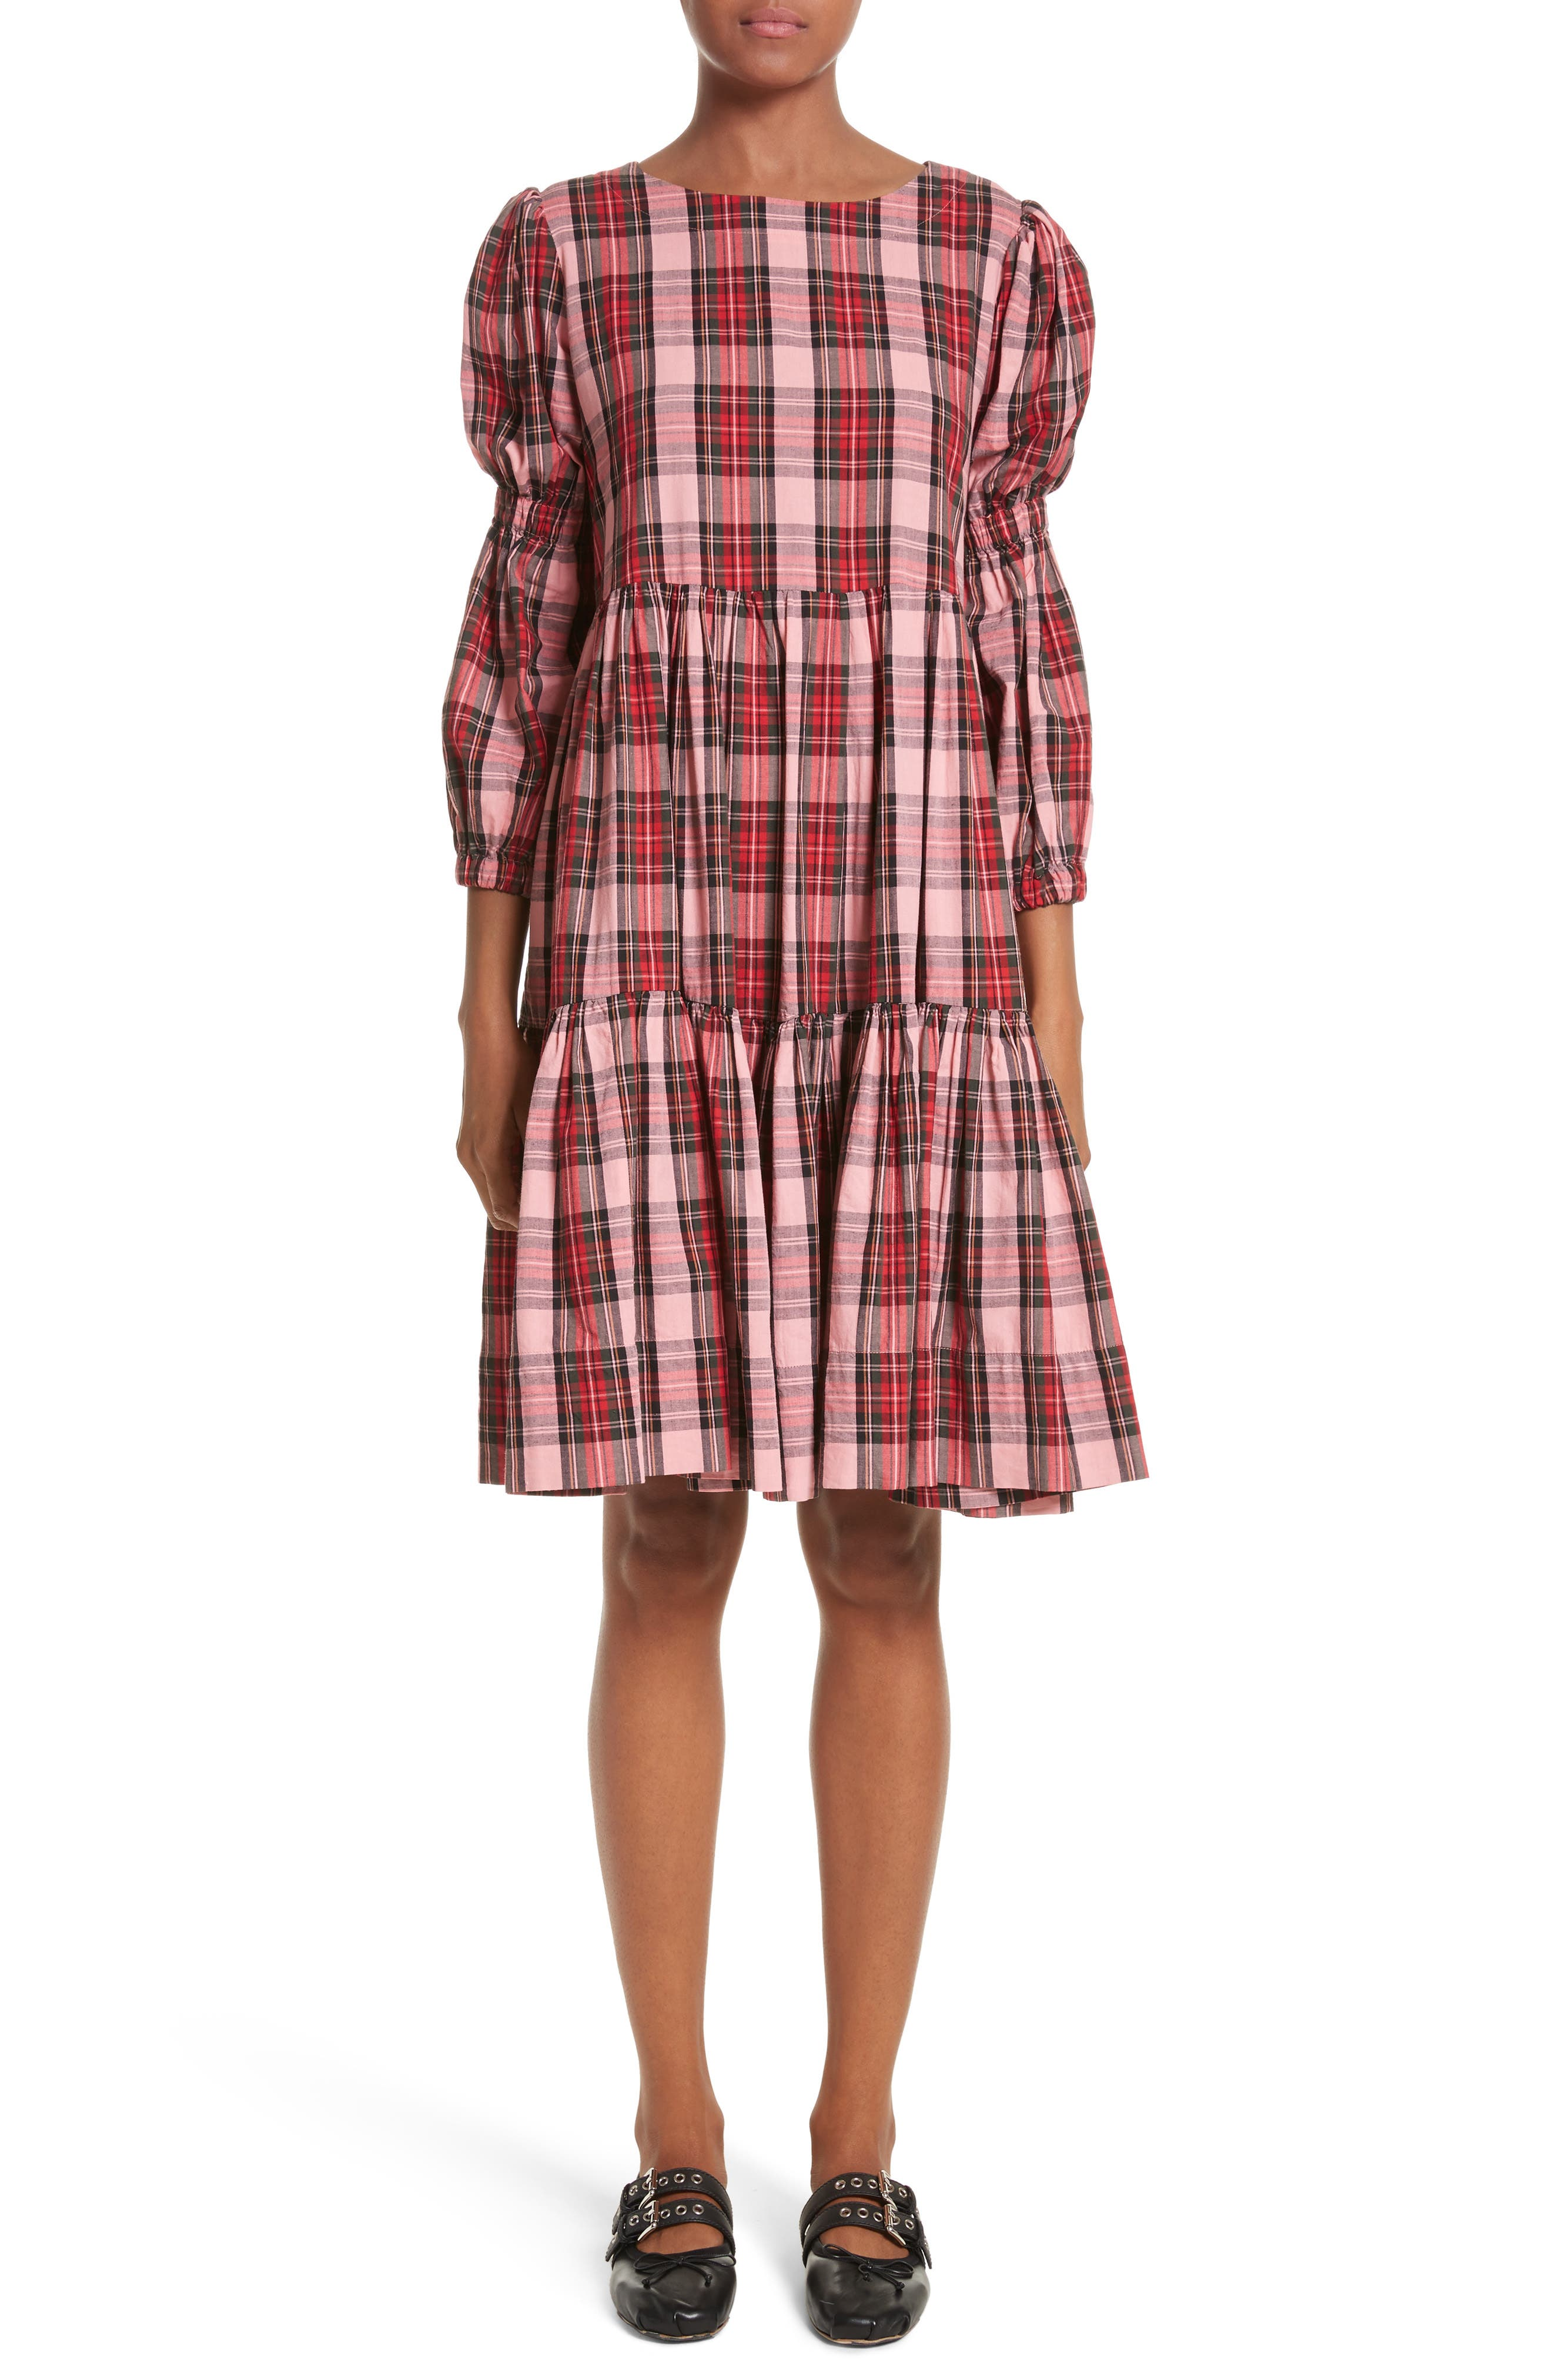 Main Image - Molly Goddard Martha Tartan Dress